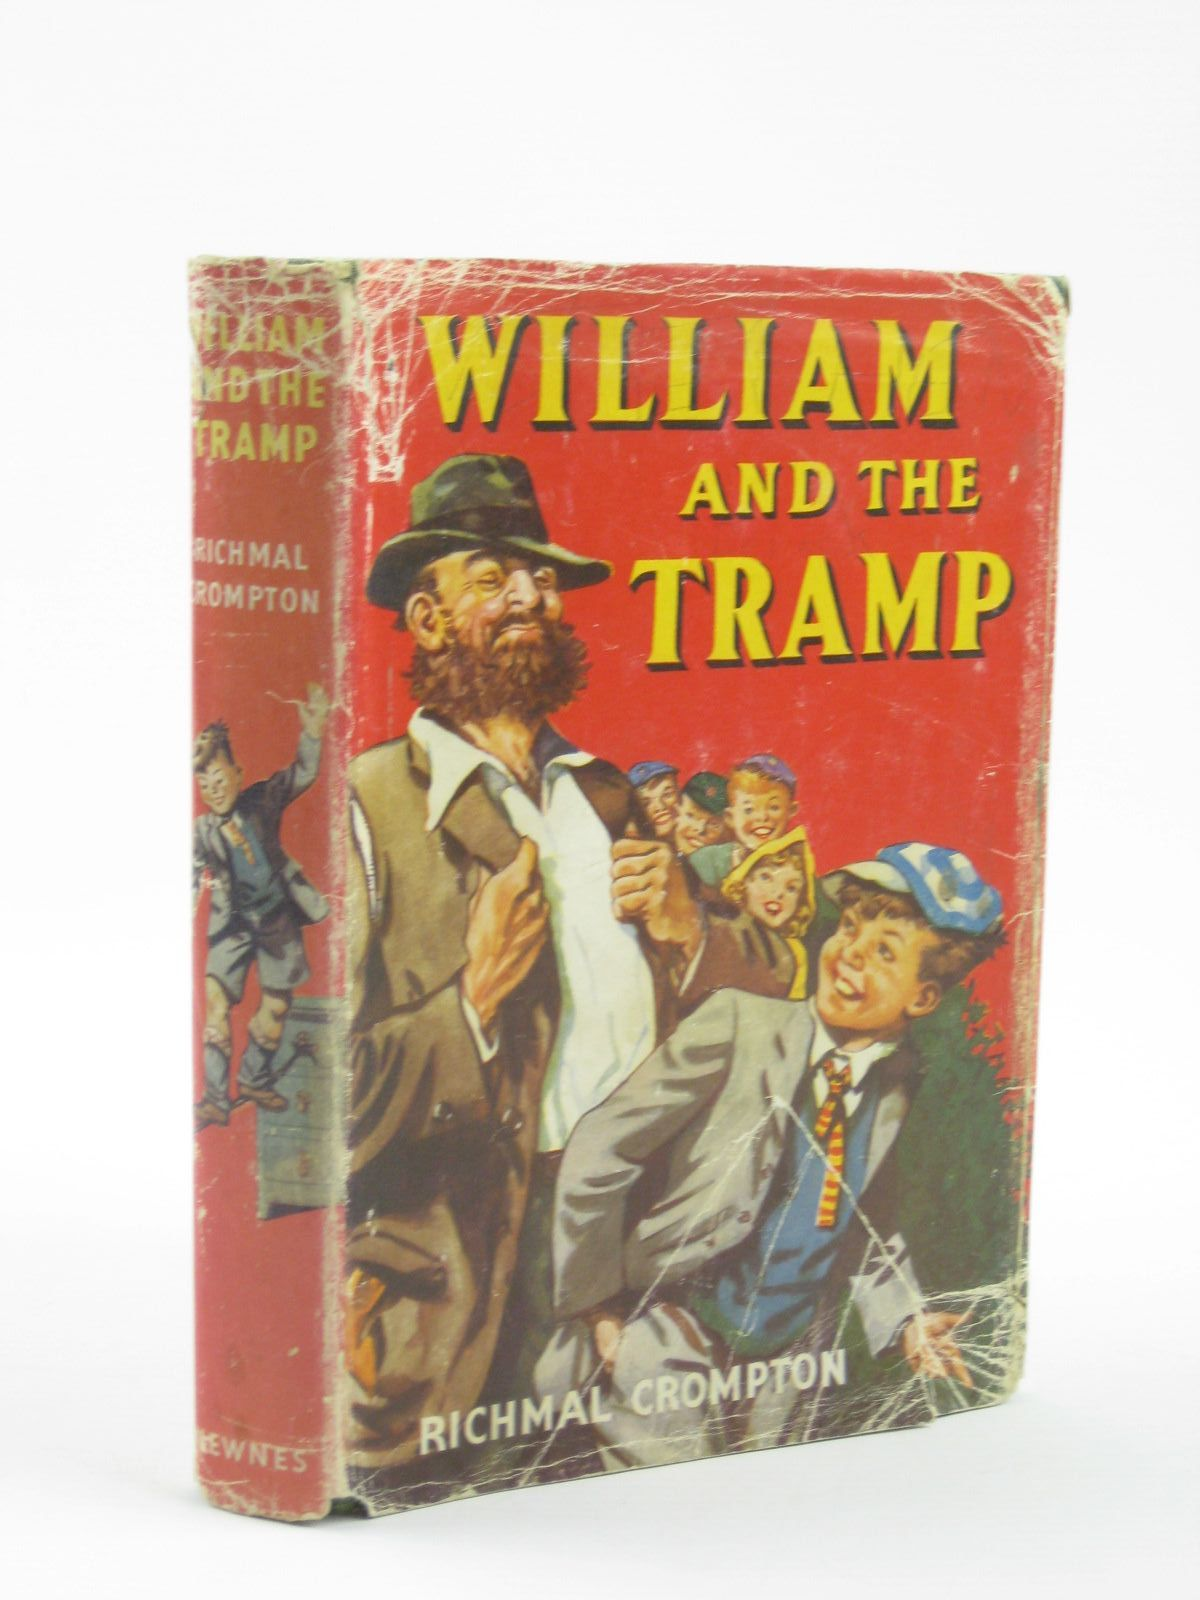 Photo of WILLIAM AND THE TRAMP written by Crompton, Richmal illustrated by Henry, Thomas published by George Newnes Ltd. (STOCK CODE: 1310724)  for sale by Stella & Rose's Books